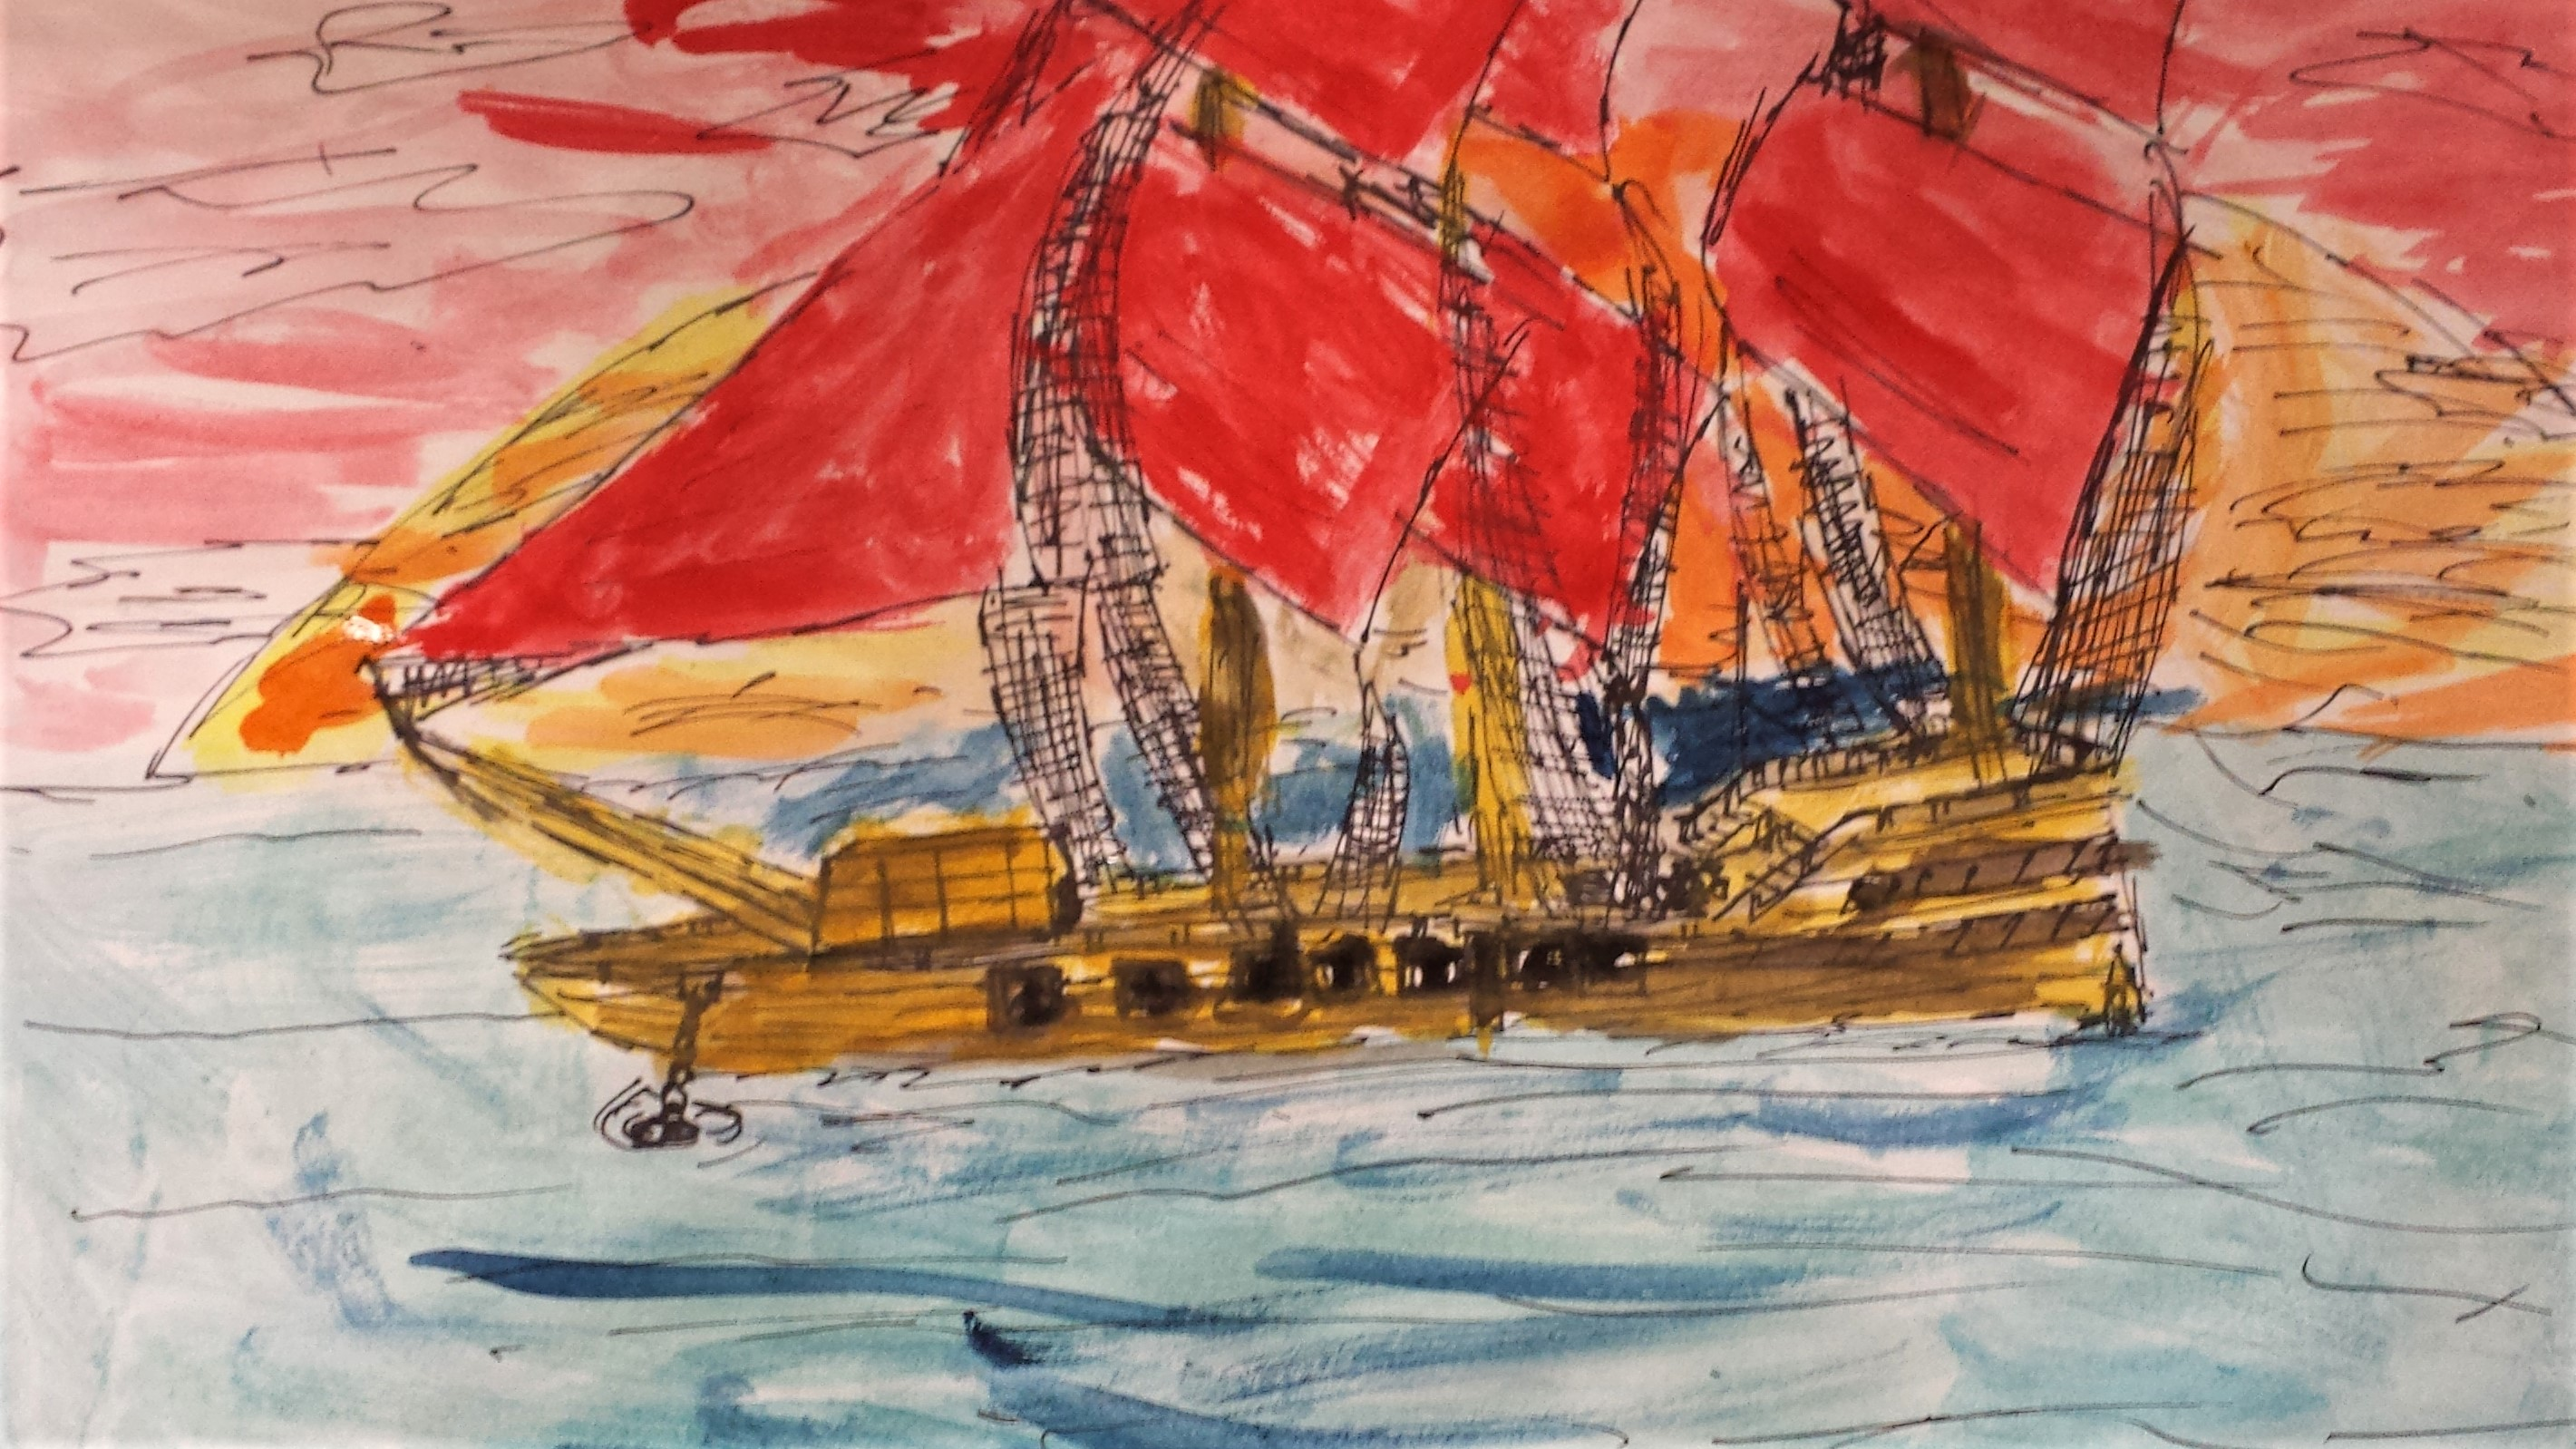 Line drawing Pirate Ship Yr 5 Turner